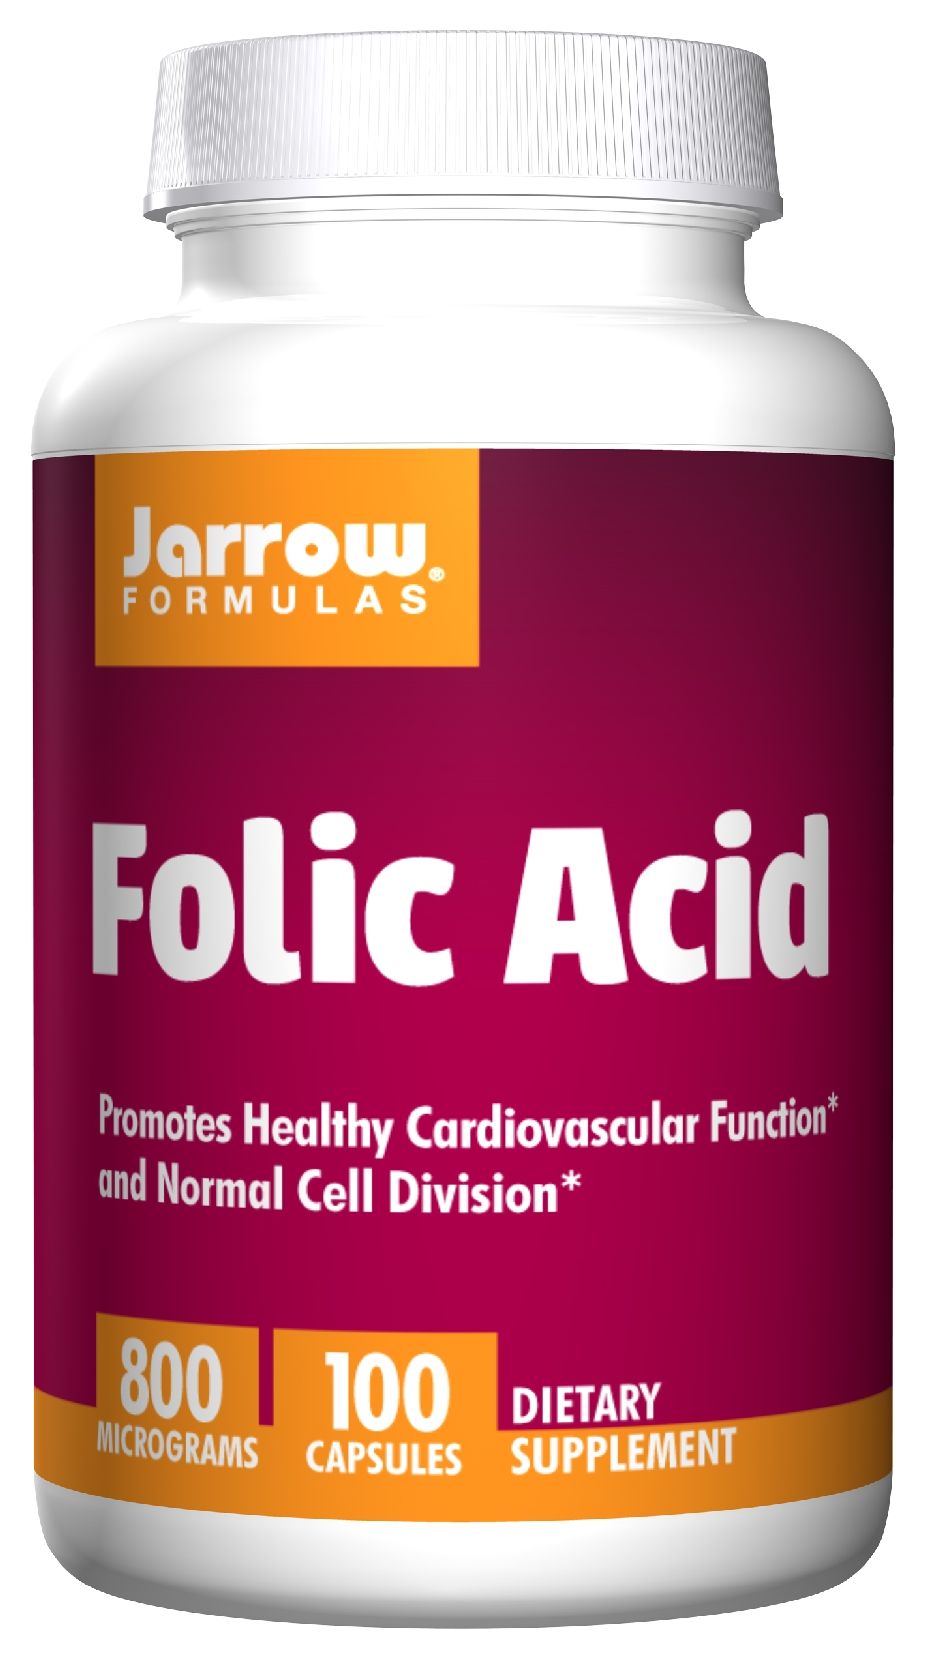 Folic Acid 800 mcg 100 caps by Jarrow Formulas